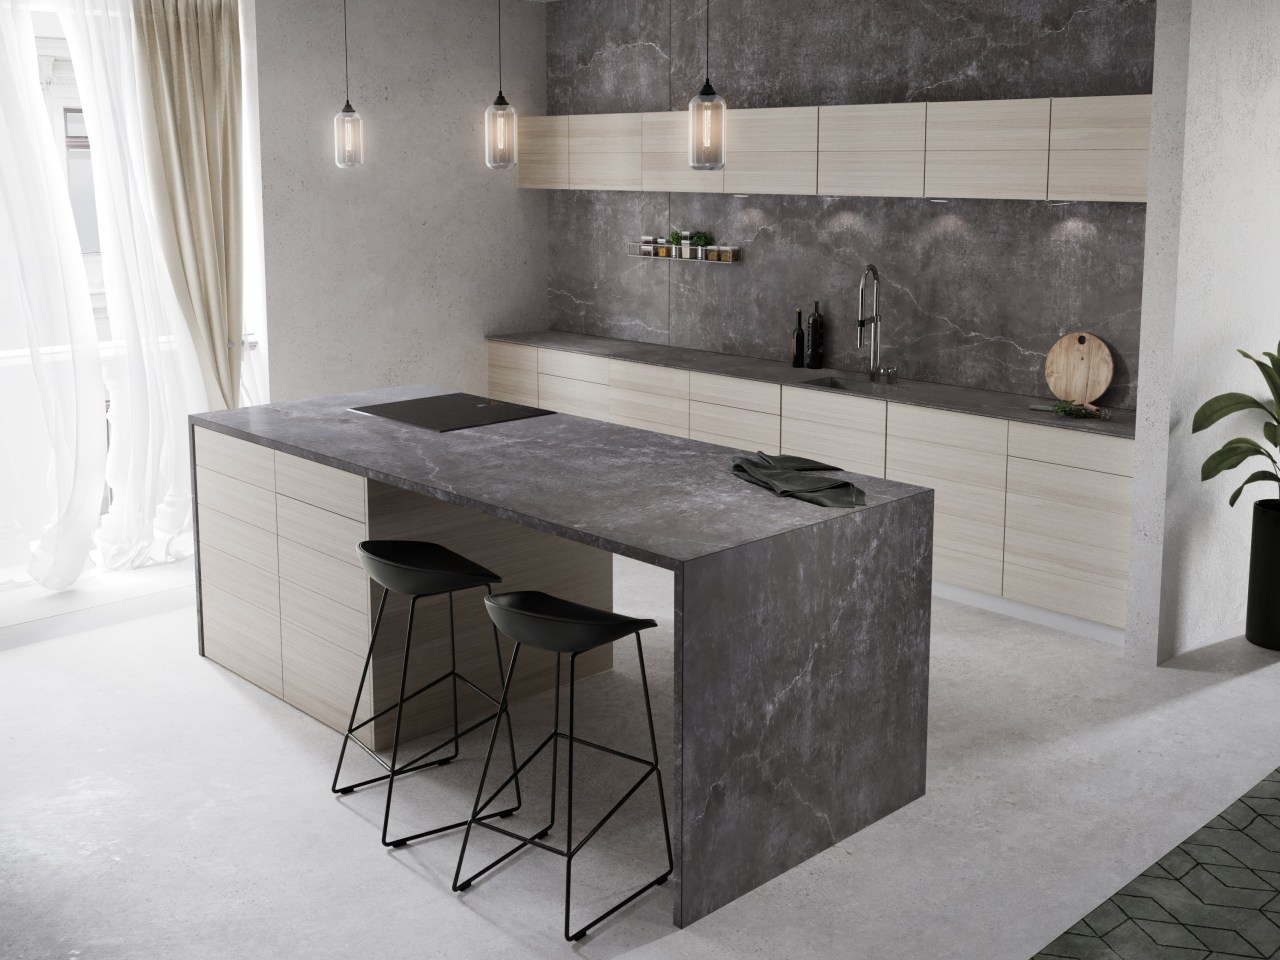 Cosentino Dekton Kitchen Laos - cabinetry | concrete cabinetry, concrete, countertop, cuisine classique, floor, flooring, furniture, interior design, kitchen, table, tile, wall, gray, white